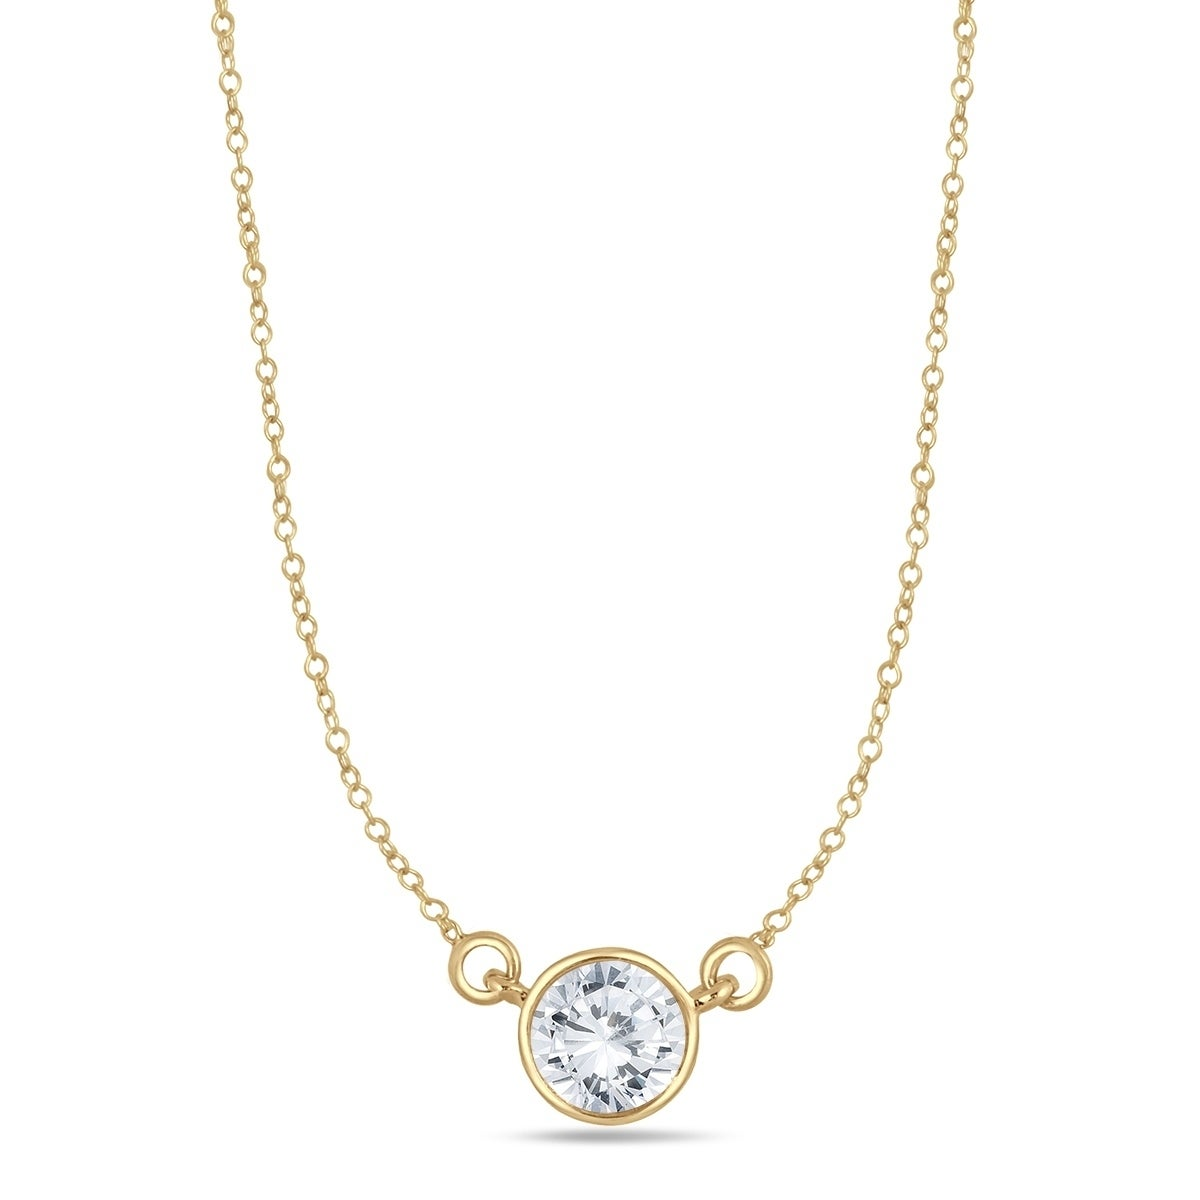 a3a0e15935b3de Shop 3/4 Carat Diamond Bezel Pendant in 14K Yellow Gold - On Sale - Free  Shipping Today - Overstock.com - 20750261